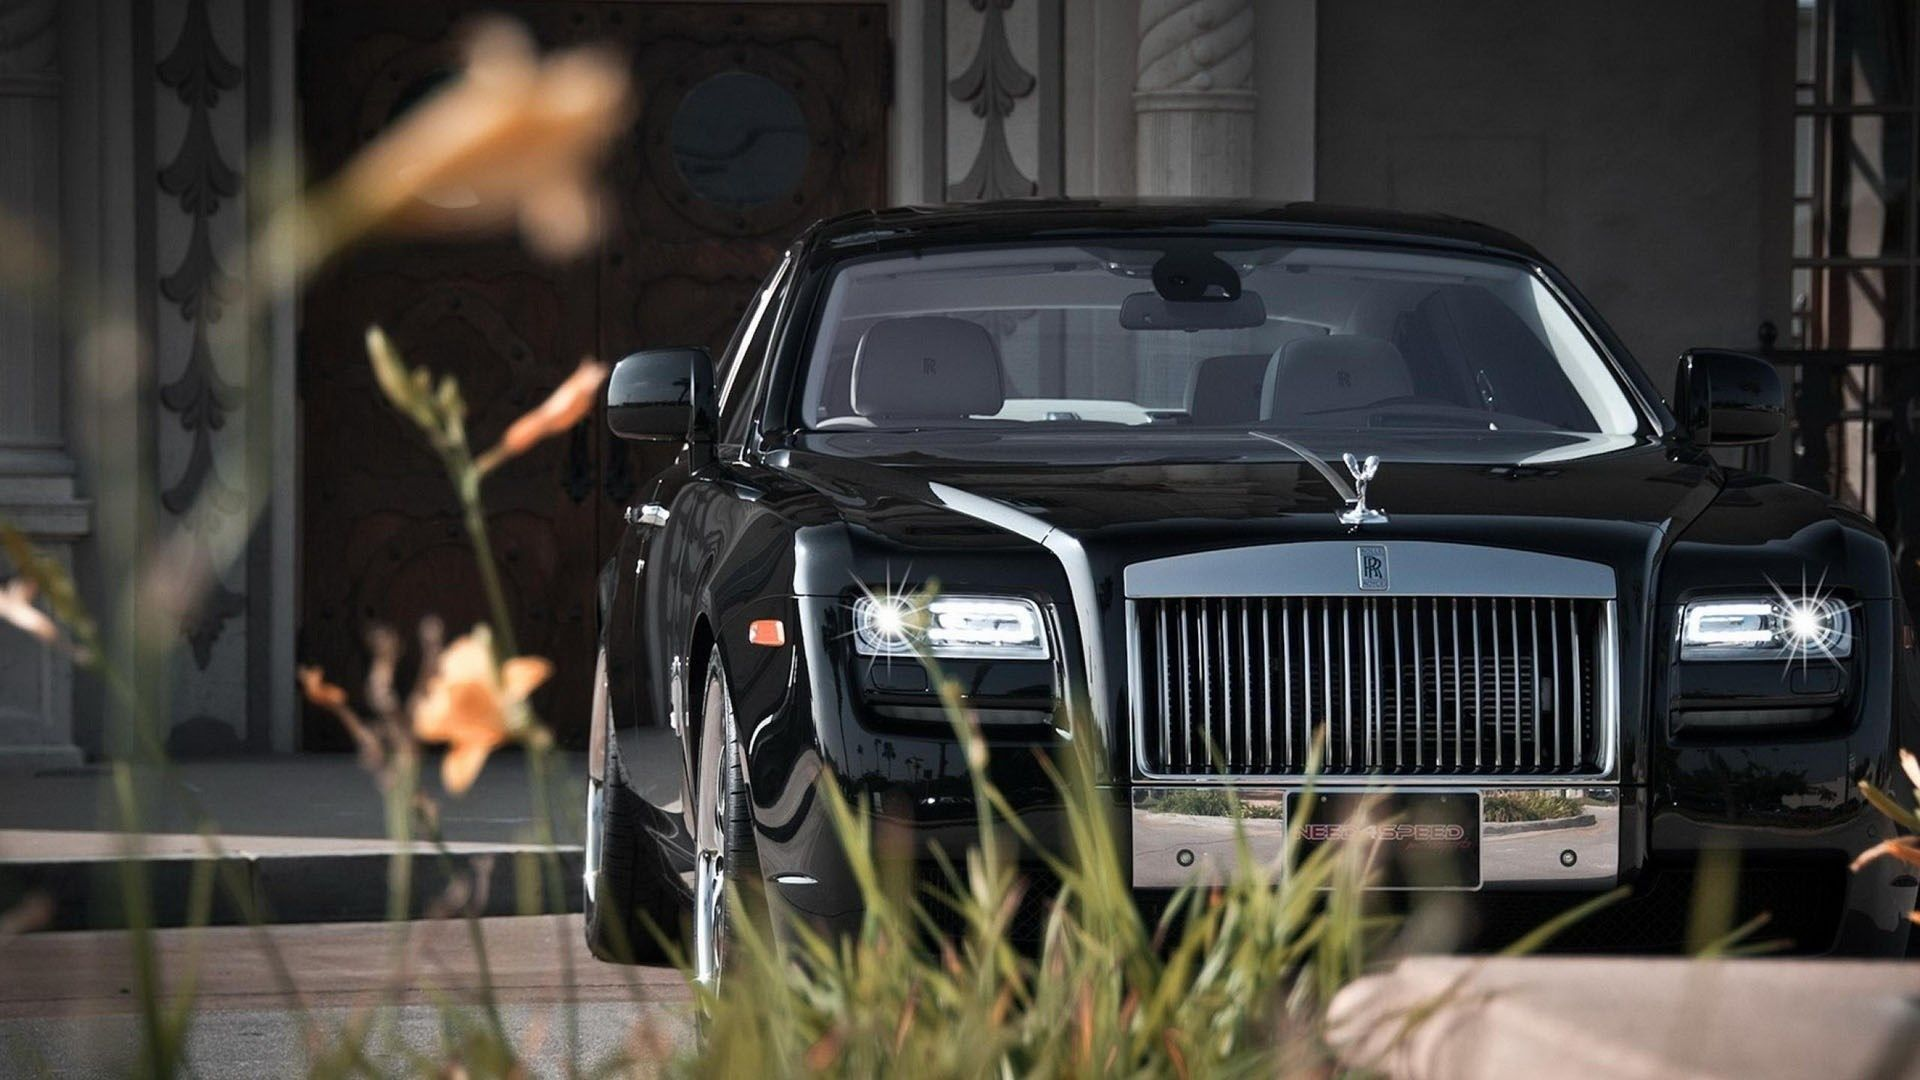 Free Screensaver Wallpapers For Rolls Royce Ghost With Images